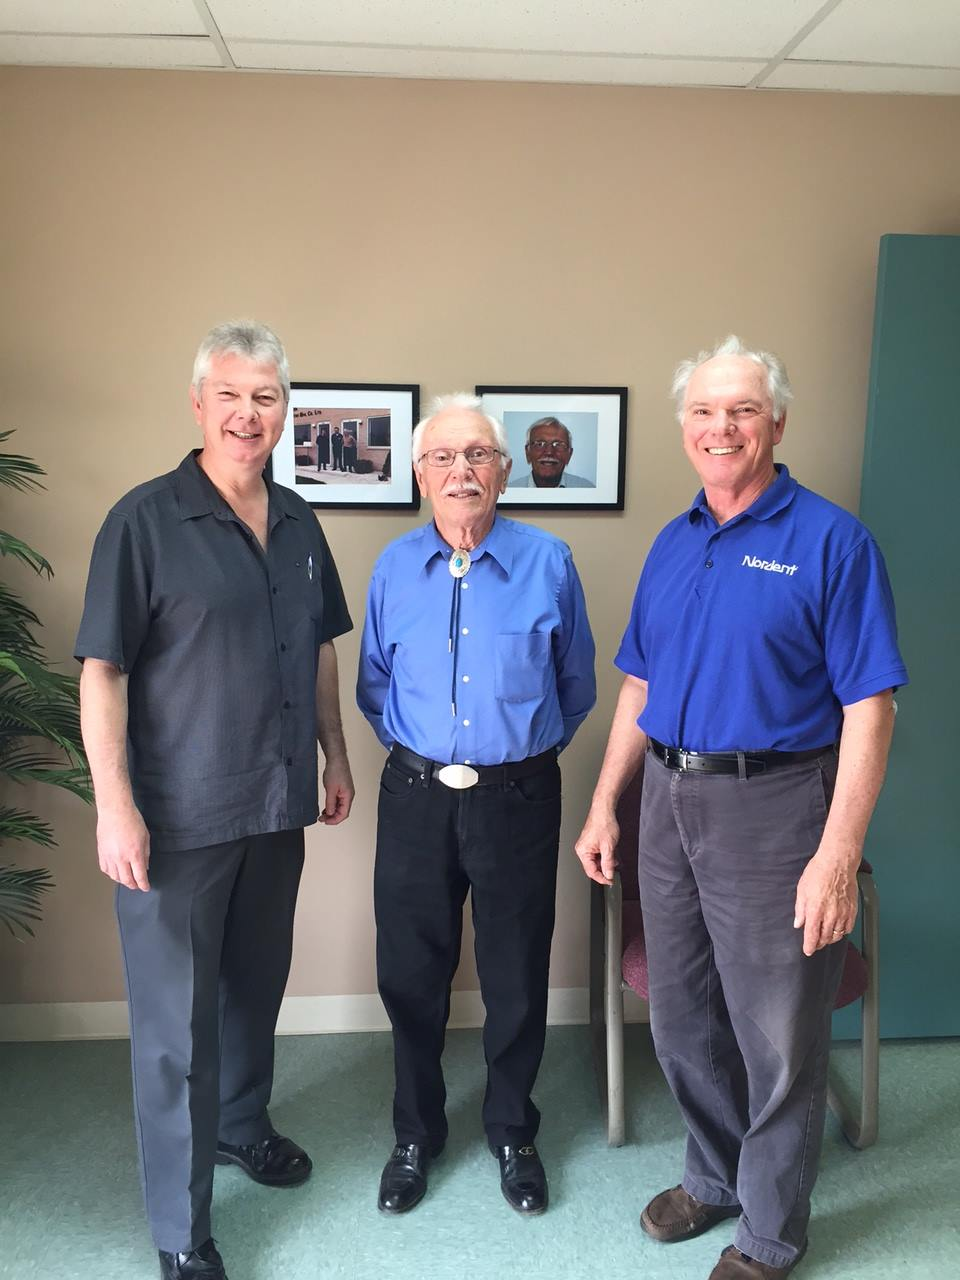 Peter Martin (founder, center) with sons Rich Martin (left) and Joe Martin (right)